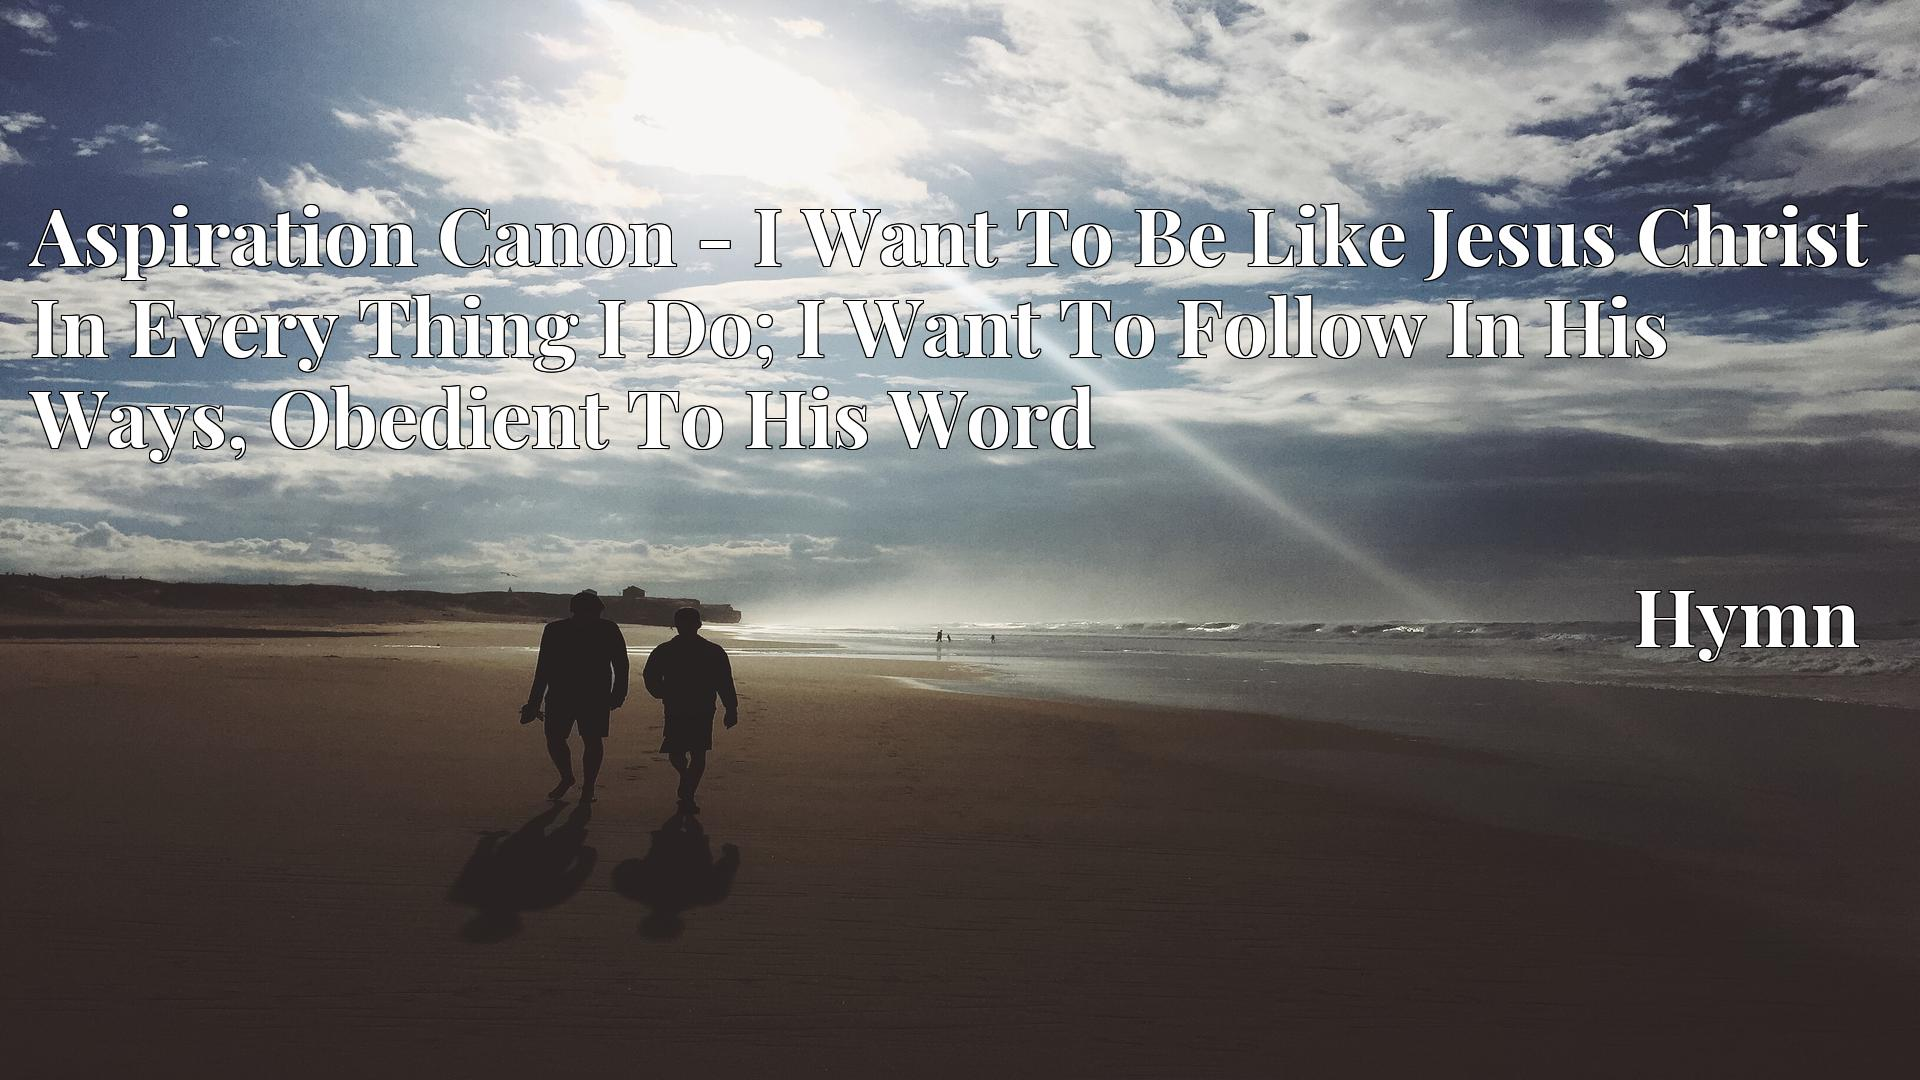 Aspiration Canon - I Want To Be Like Jesus Christ In Every Thing I Do; I Want To Follow In His Ways, Obedient To His Word - Hymn